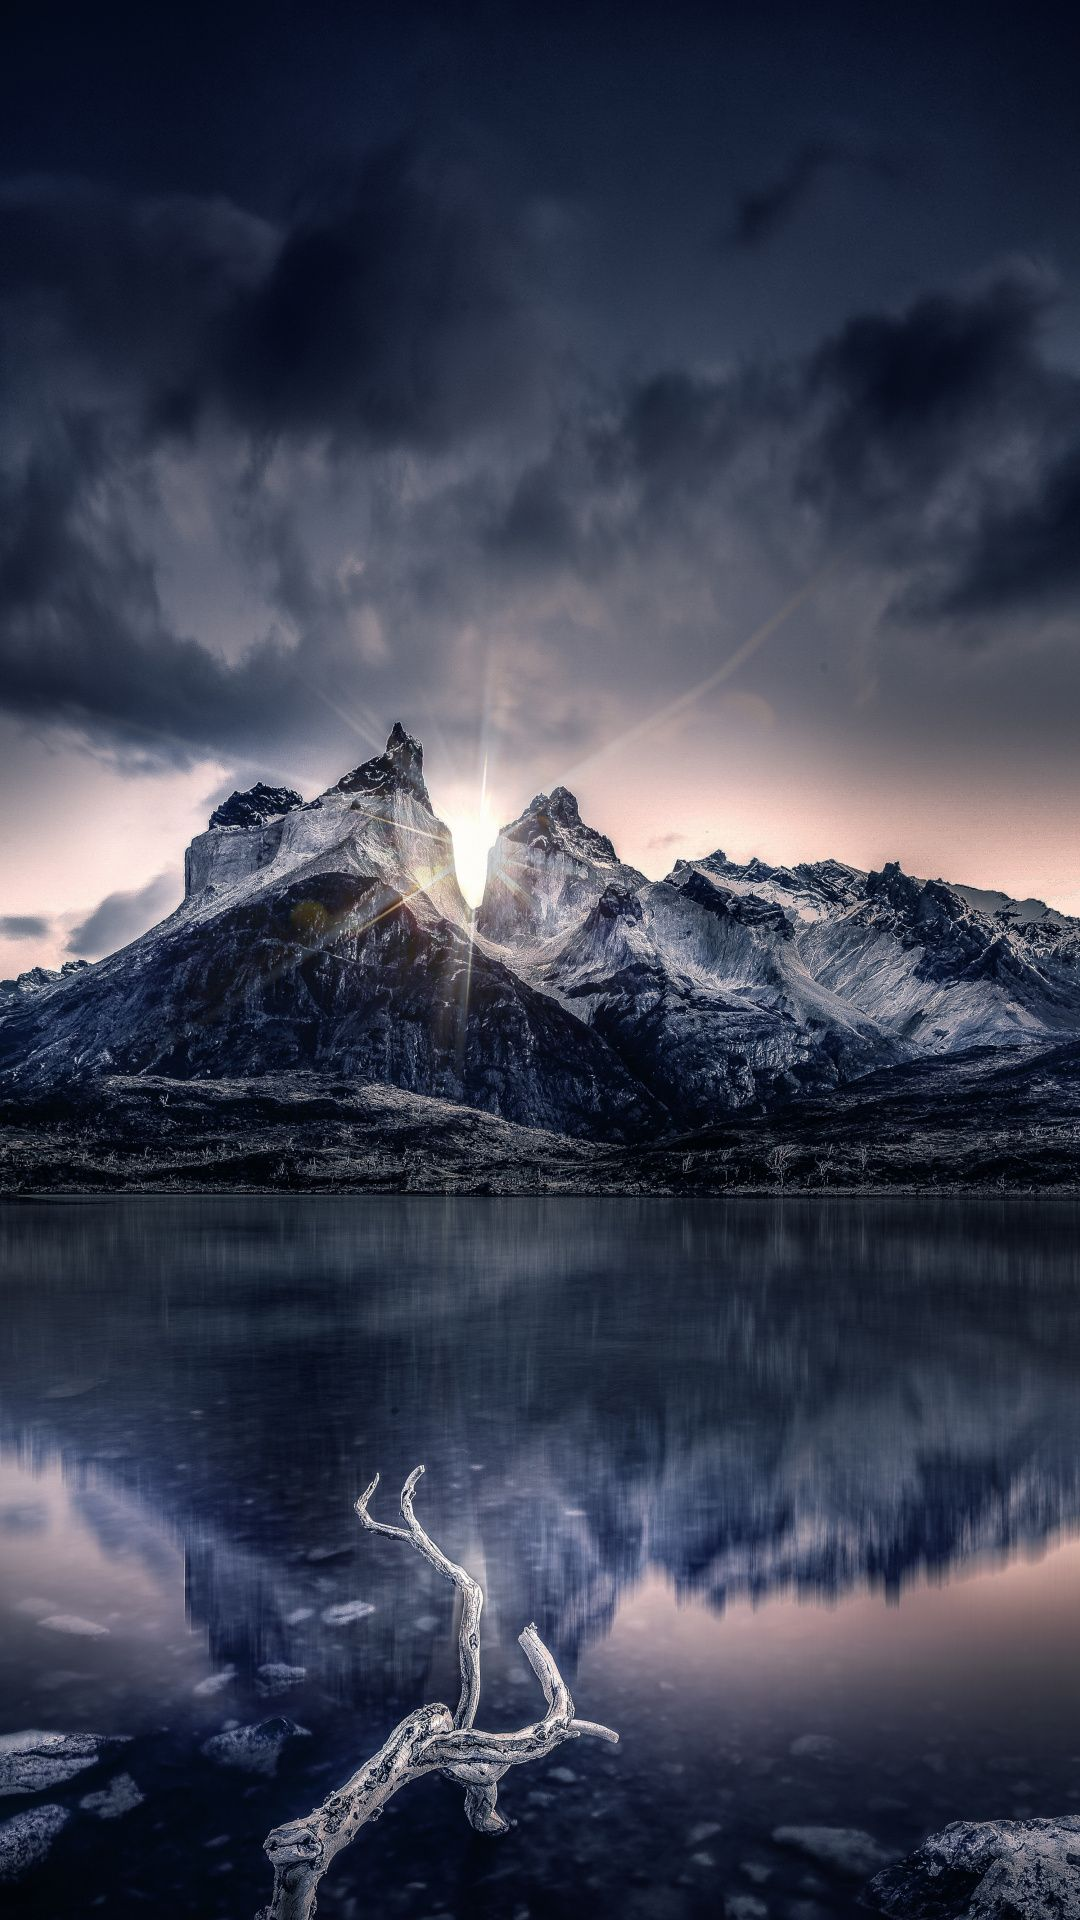 Mountains Lake Reflections Clouds Nature 1080x1920 Wallpaper Snow Wallpaper Iphone Iphone Wallpaper Mountains Mountain Wallpaper